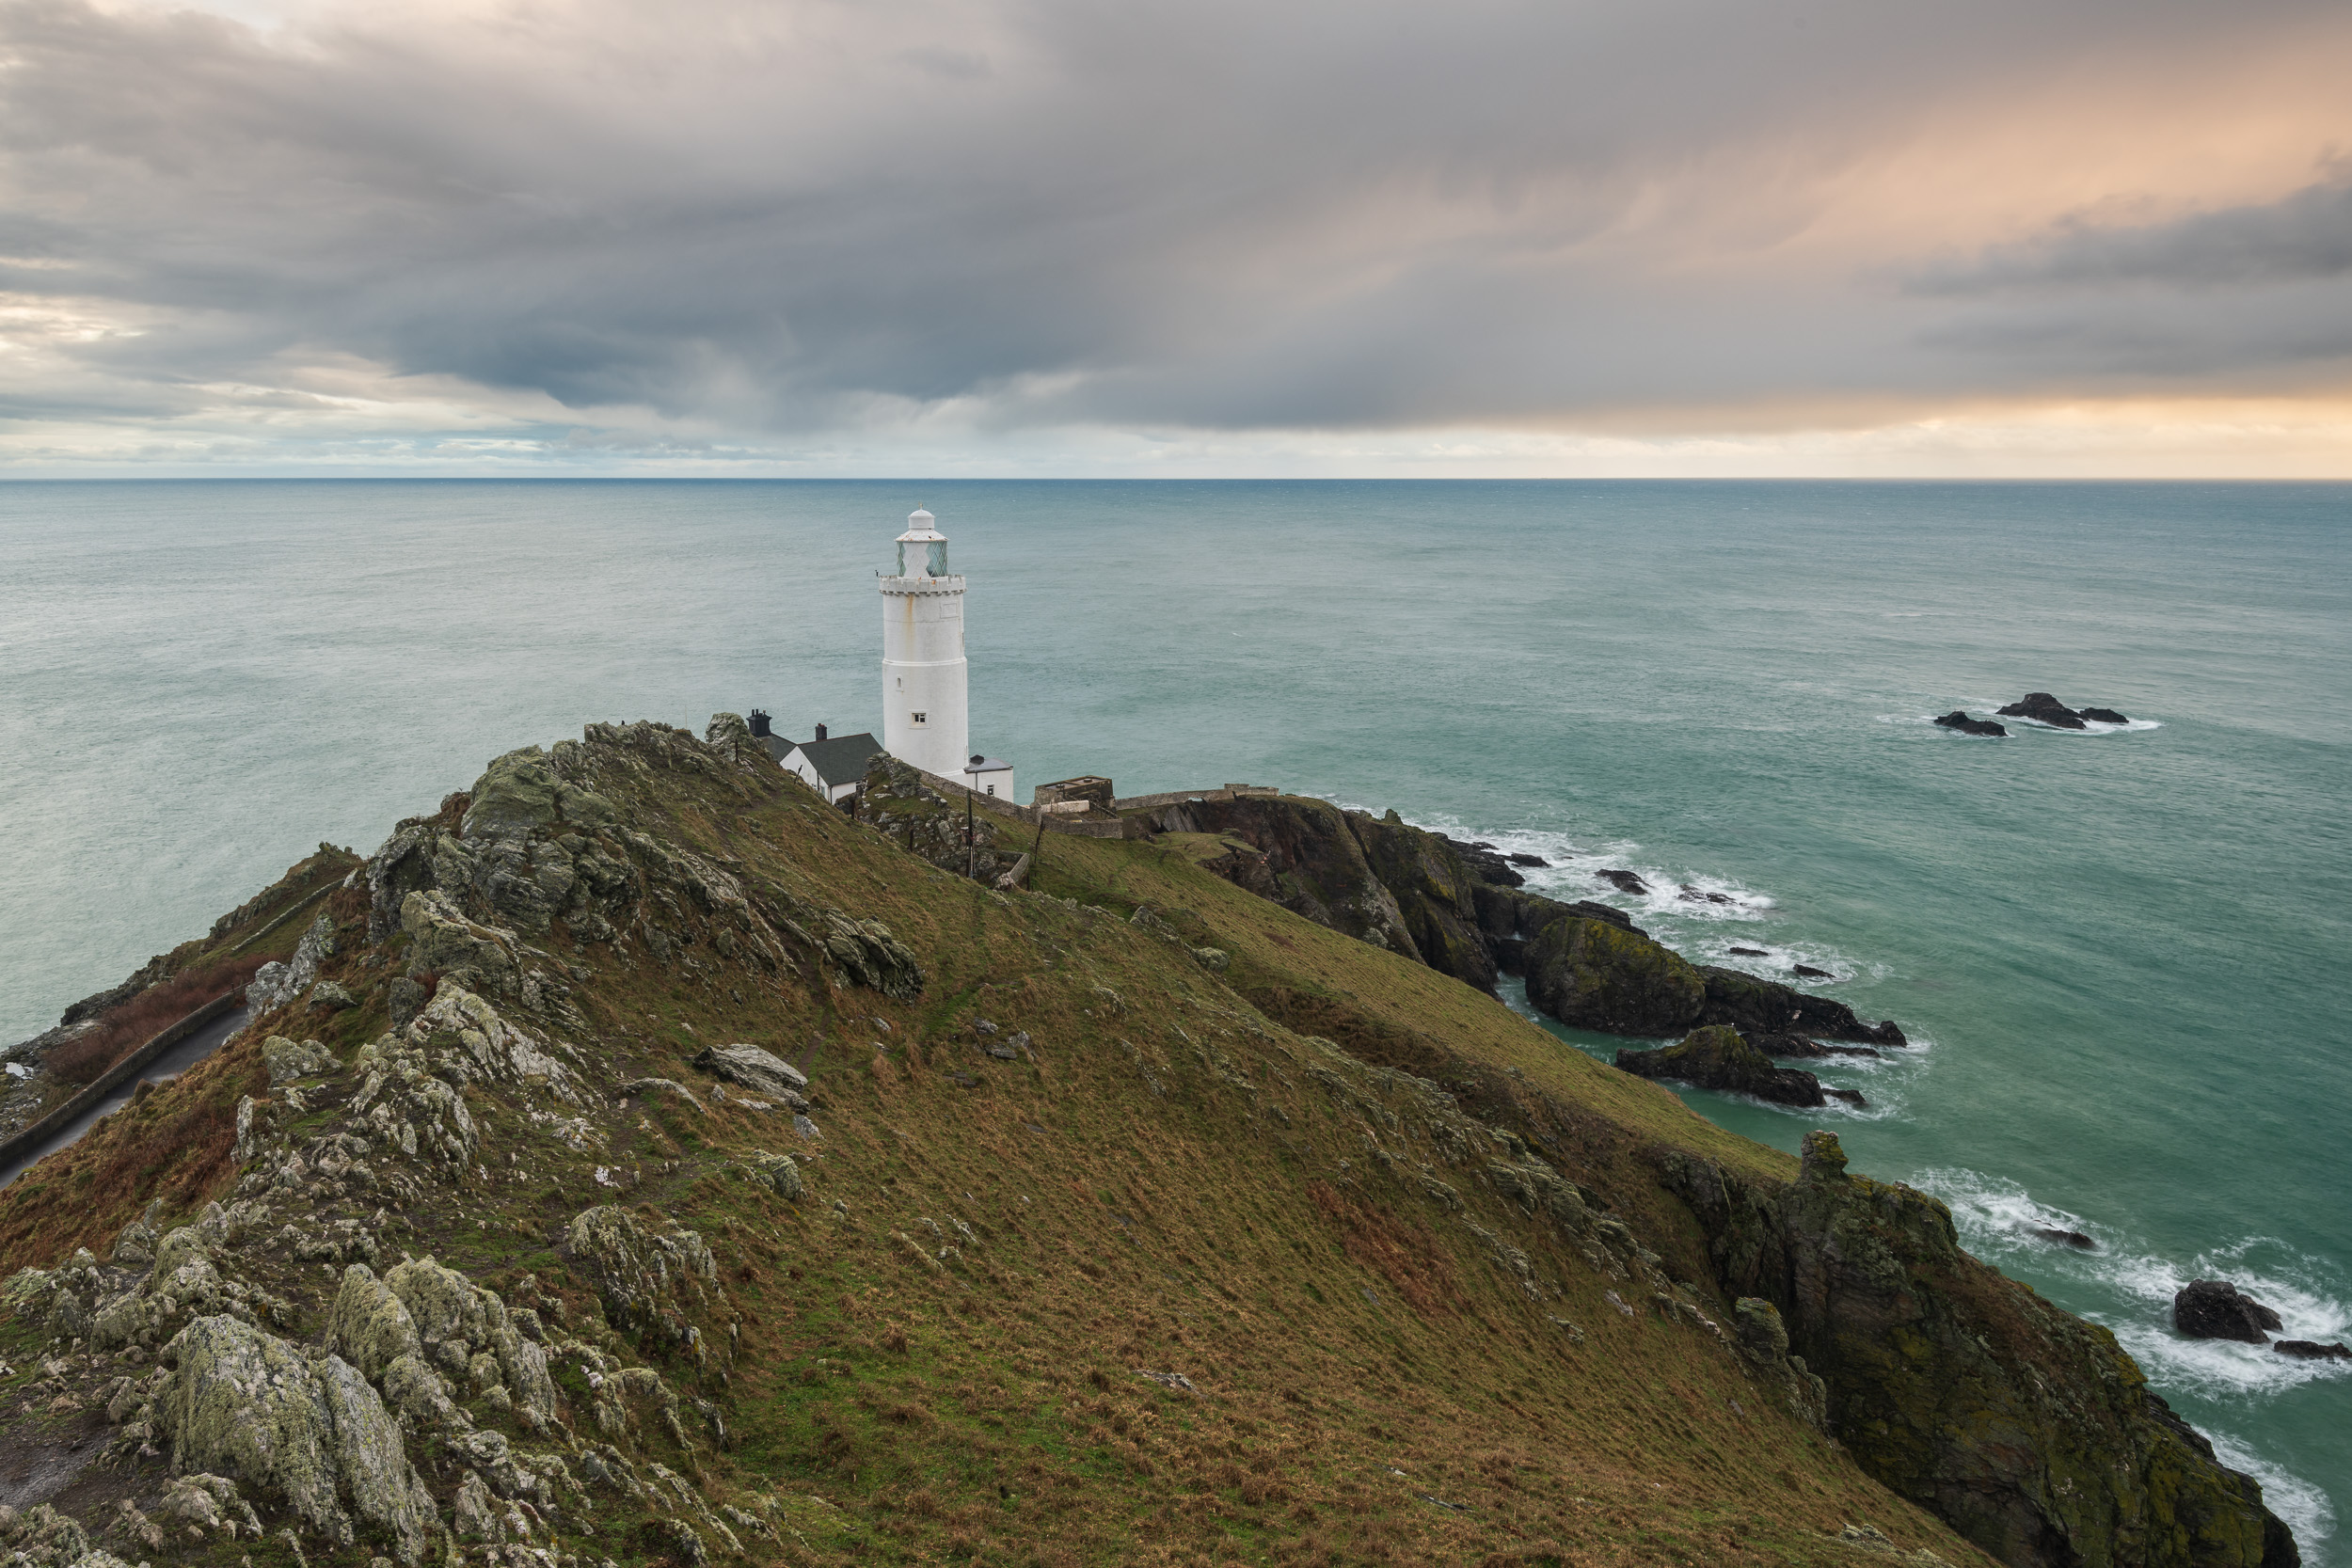 A Stormy Dawn at Start Point Lighthouse, Devon  - Nikon D850, Nikkor 16-35 mm f/4 at 22 mm, f/13, 1.3 seconds at ISO 64, polariser, ND grad.